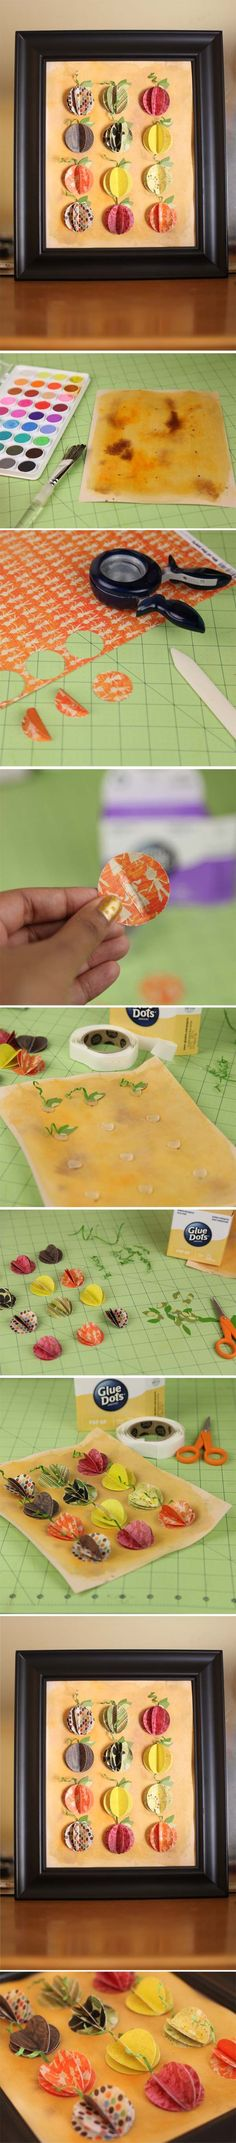 Creating home decor items for the fall are easy! @Smitha Katti shows you how to create this elegant piece of autumn.